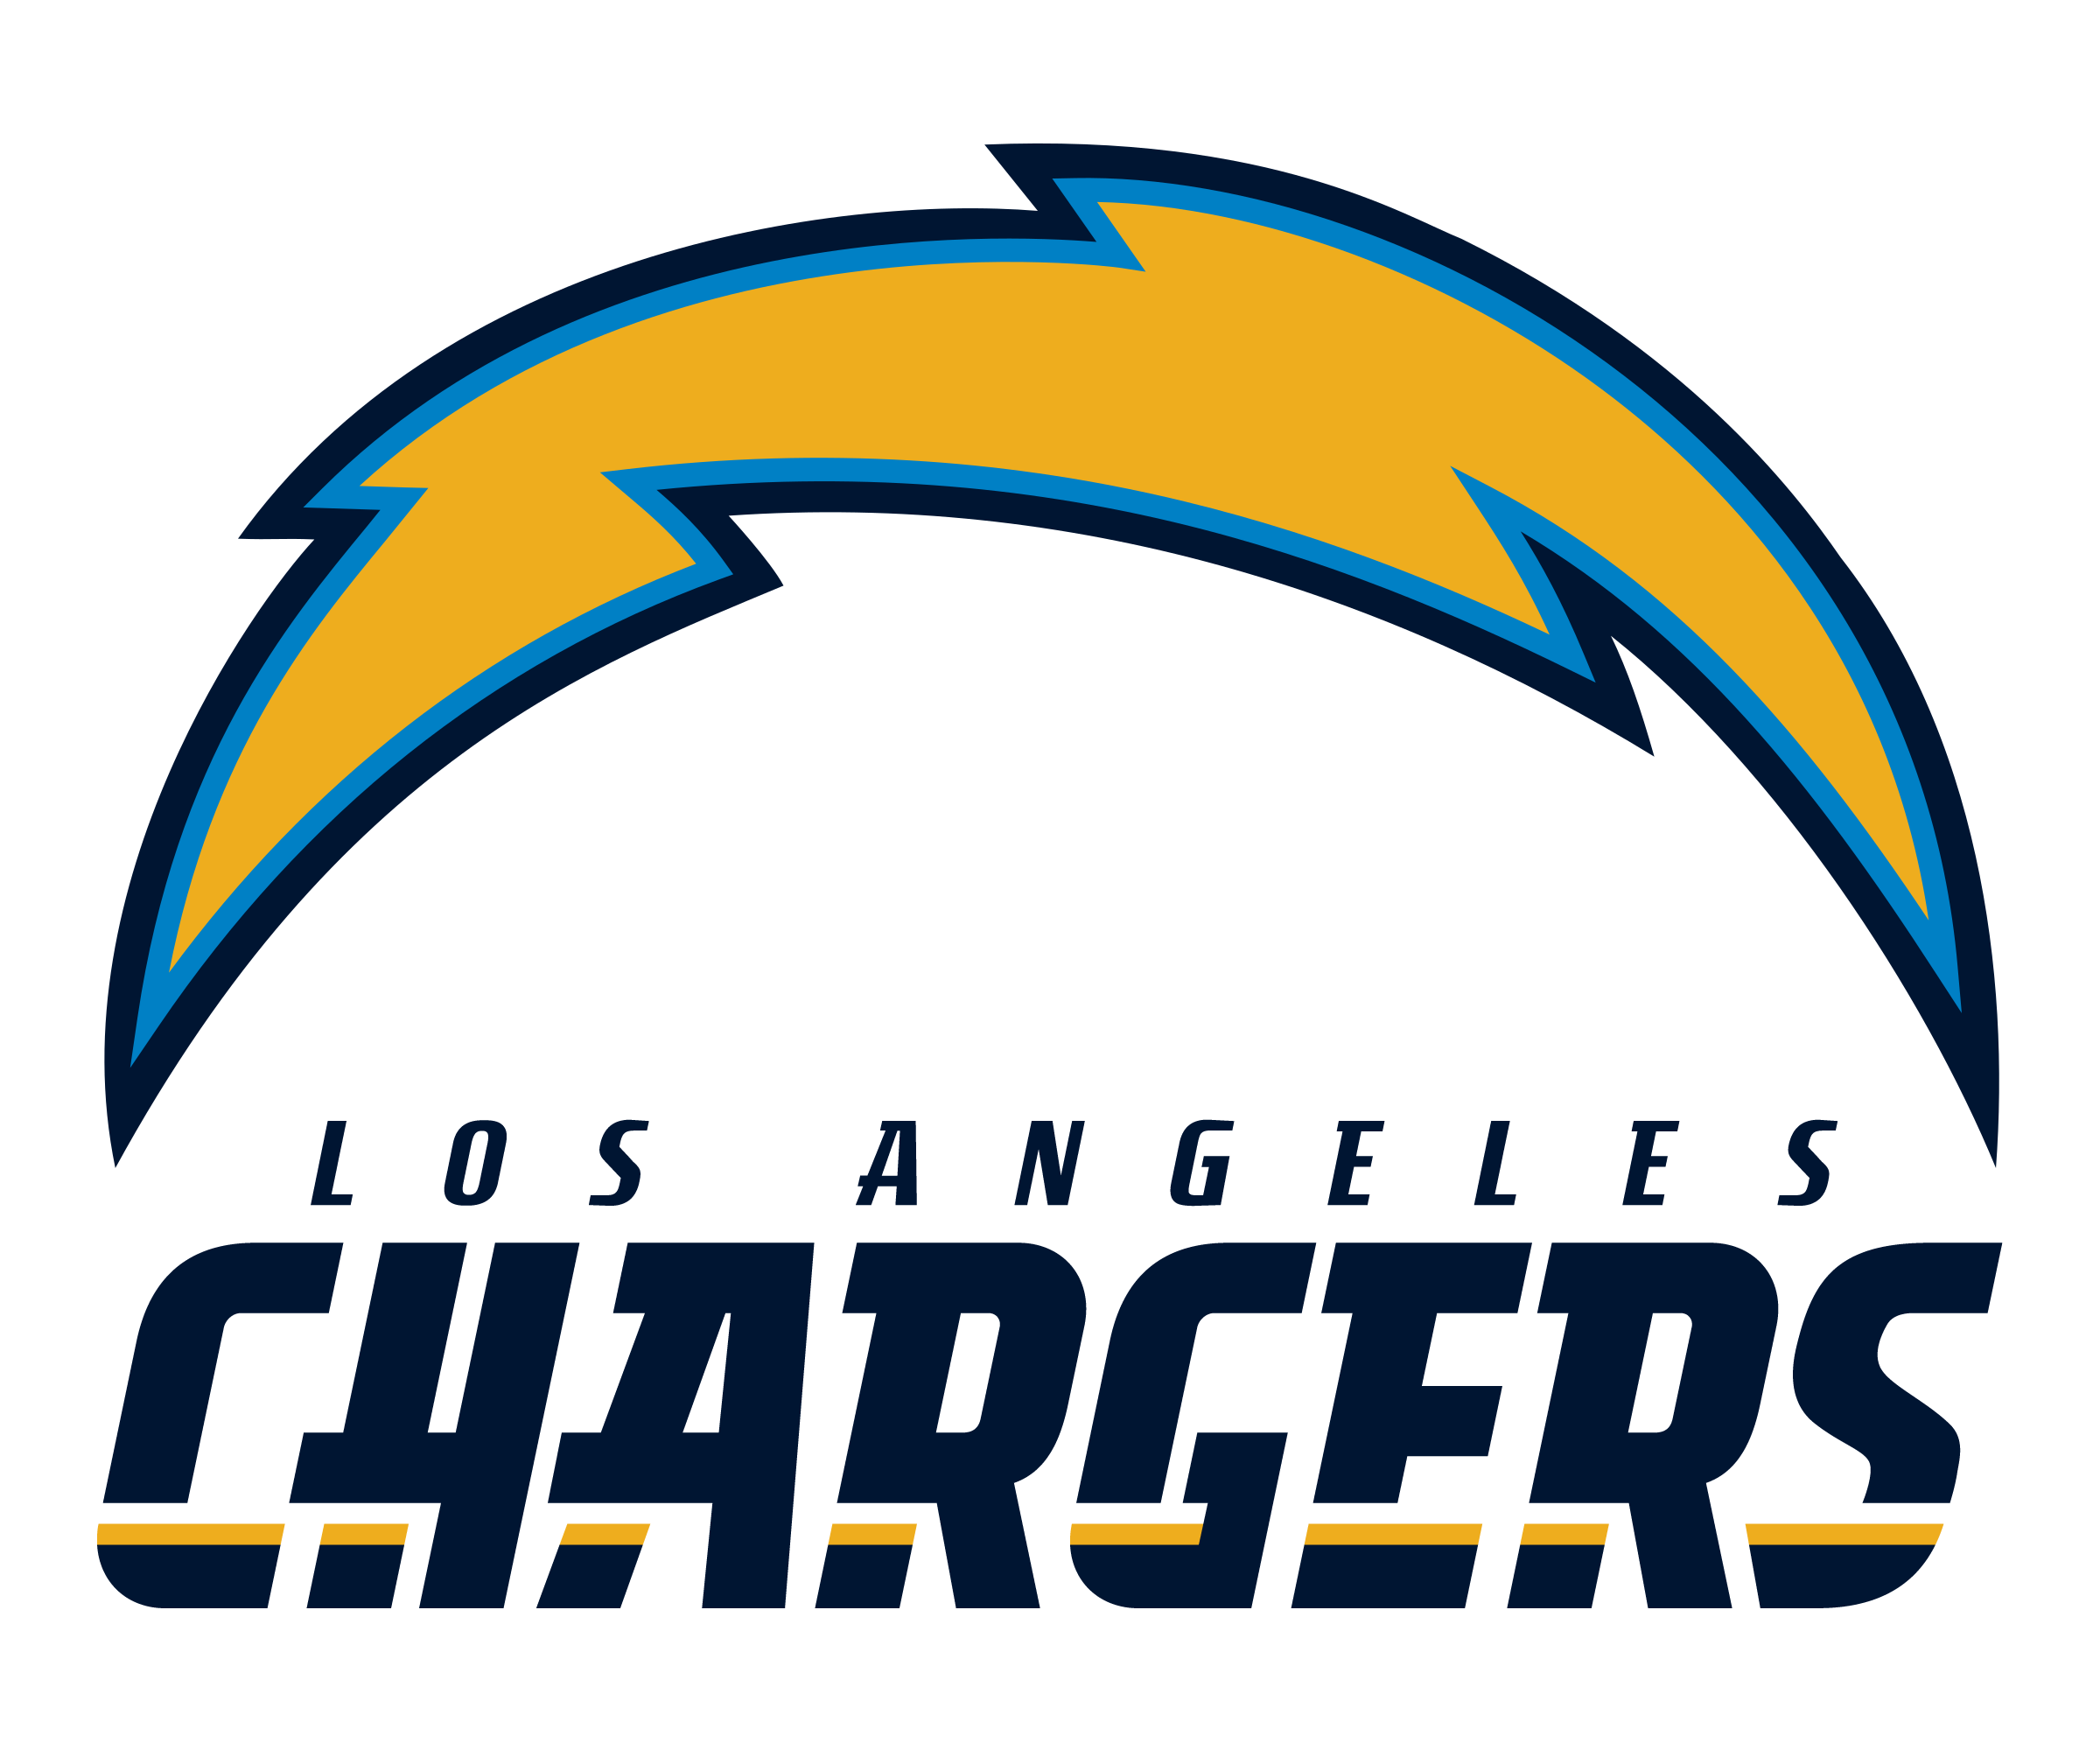 San Diego Chargers Backgrounds: Los Angeles Chargers Logo PNG Transparent & SVG Vector